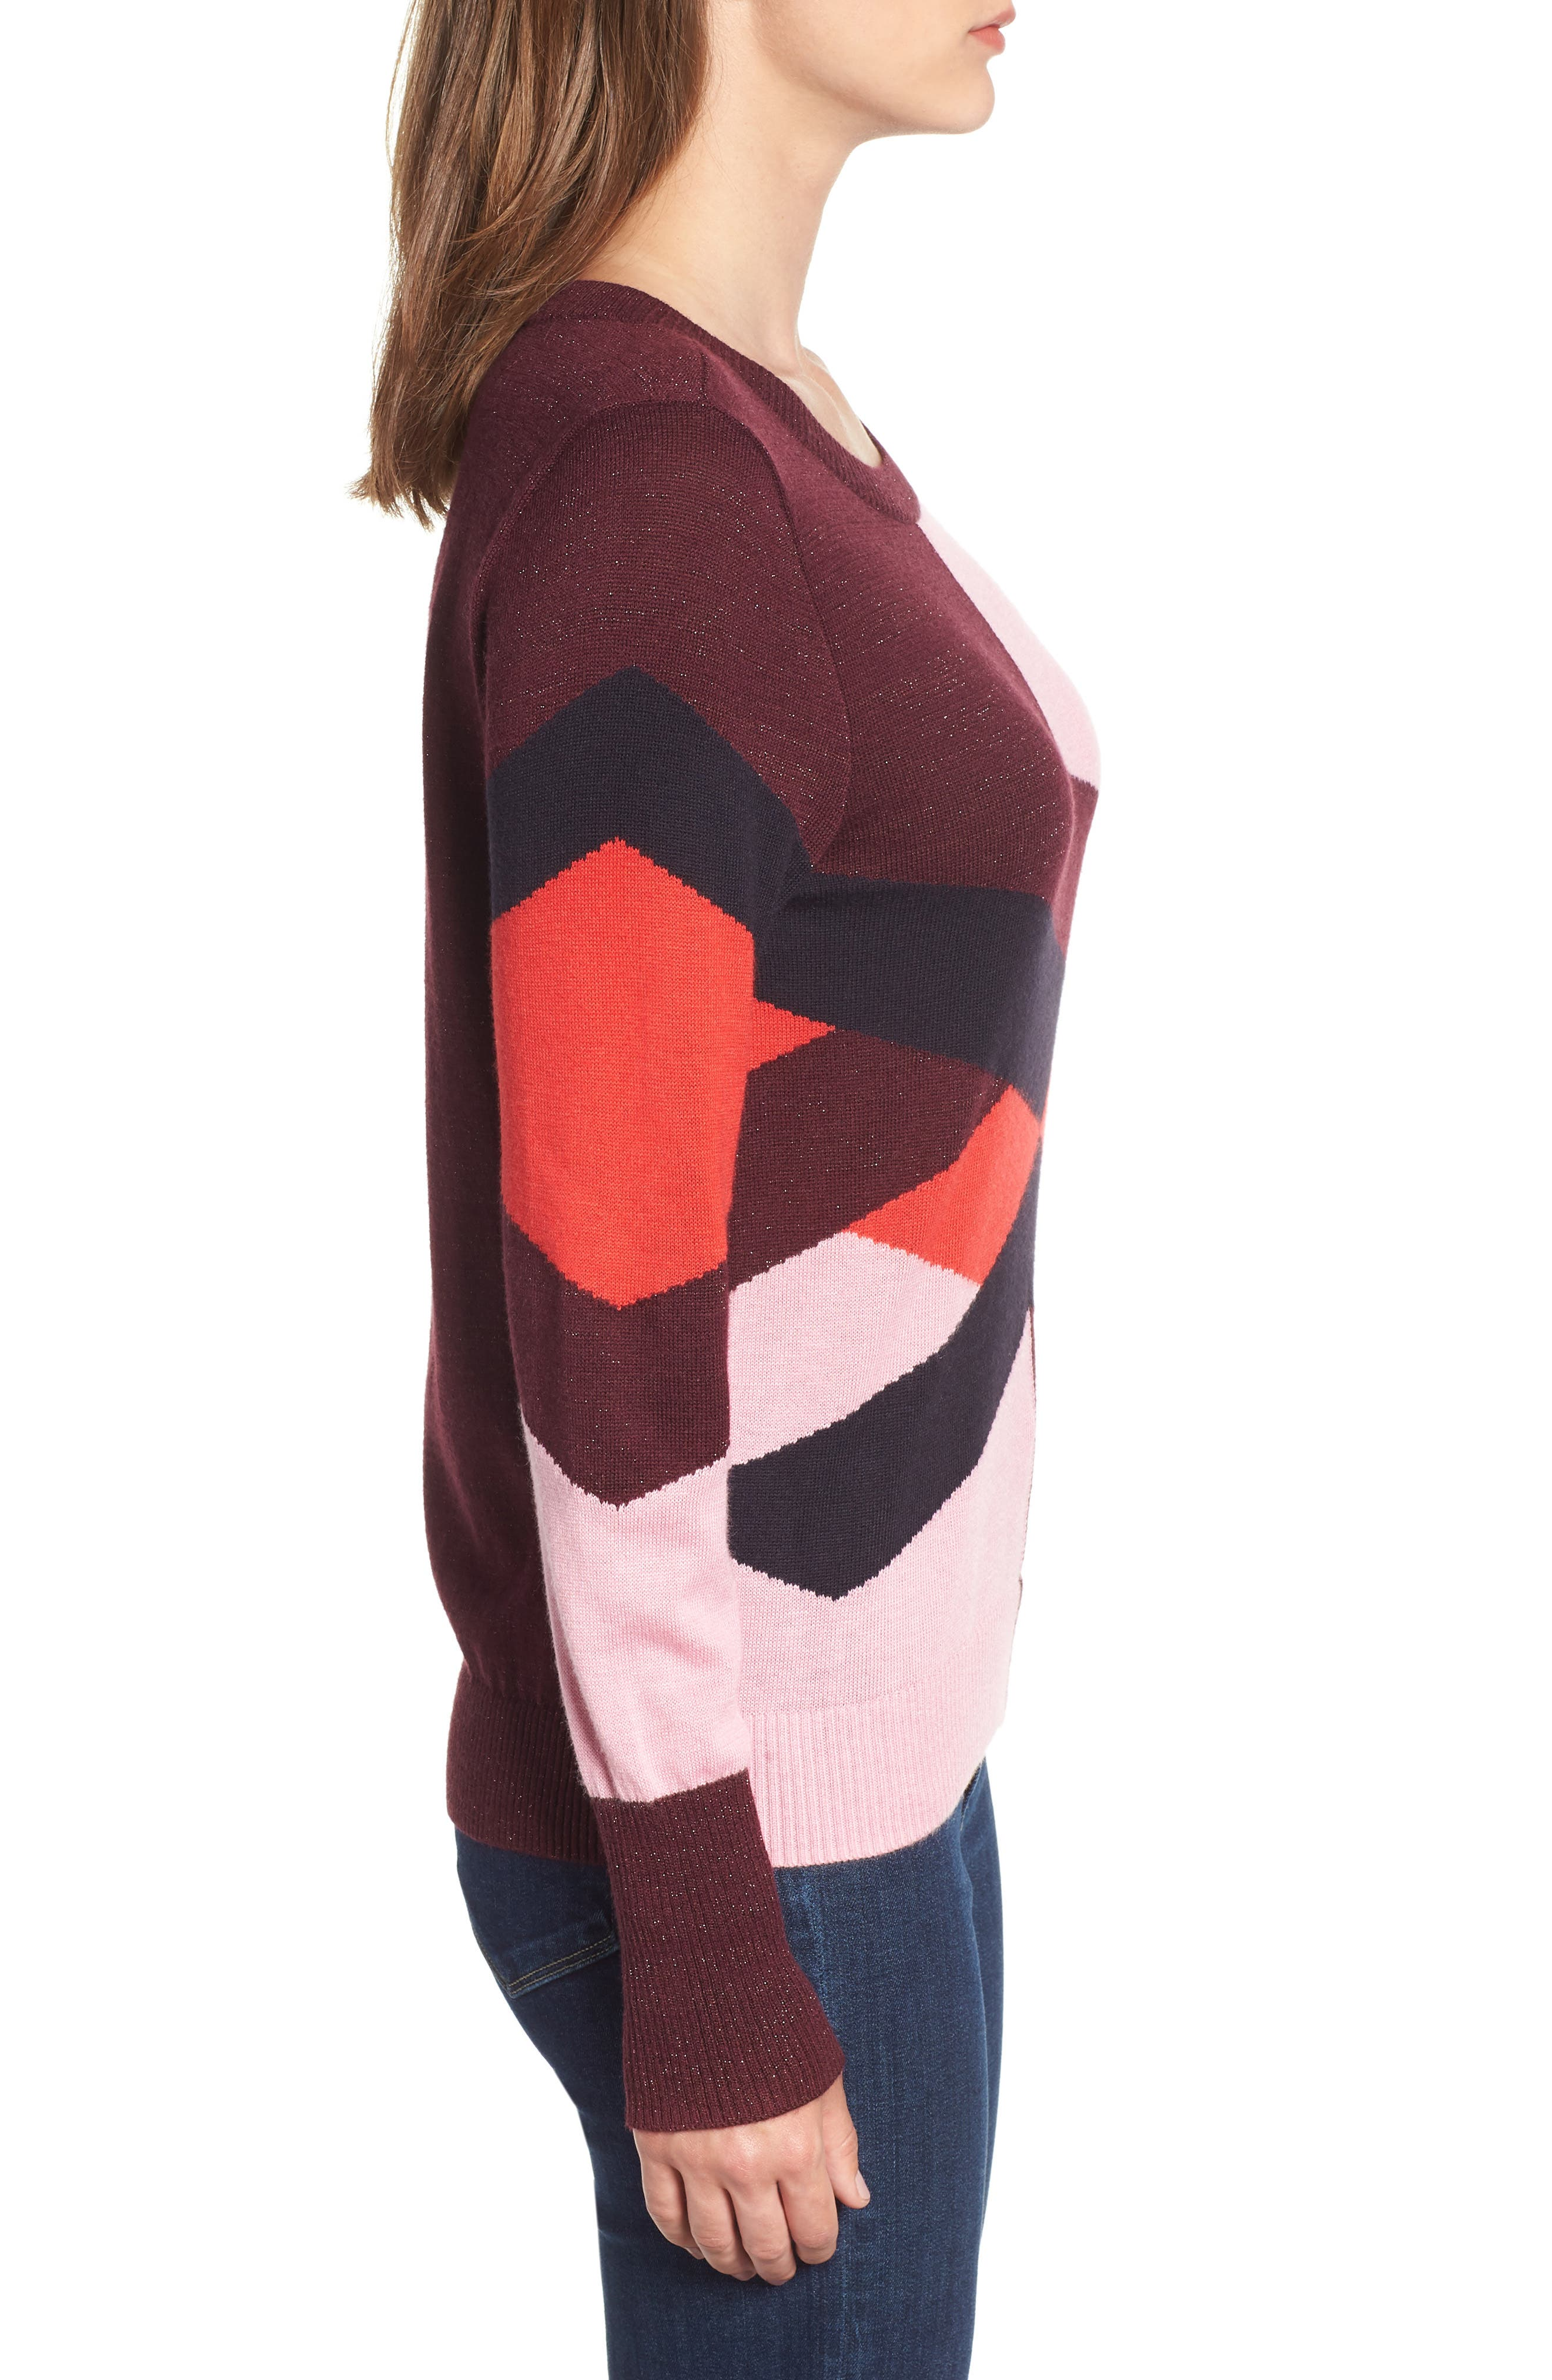 Intarsia Sweater,                             Alternate thumbnail 3, color,                             PINK STORM GRAPHIC INTARSIA